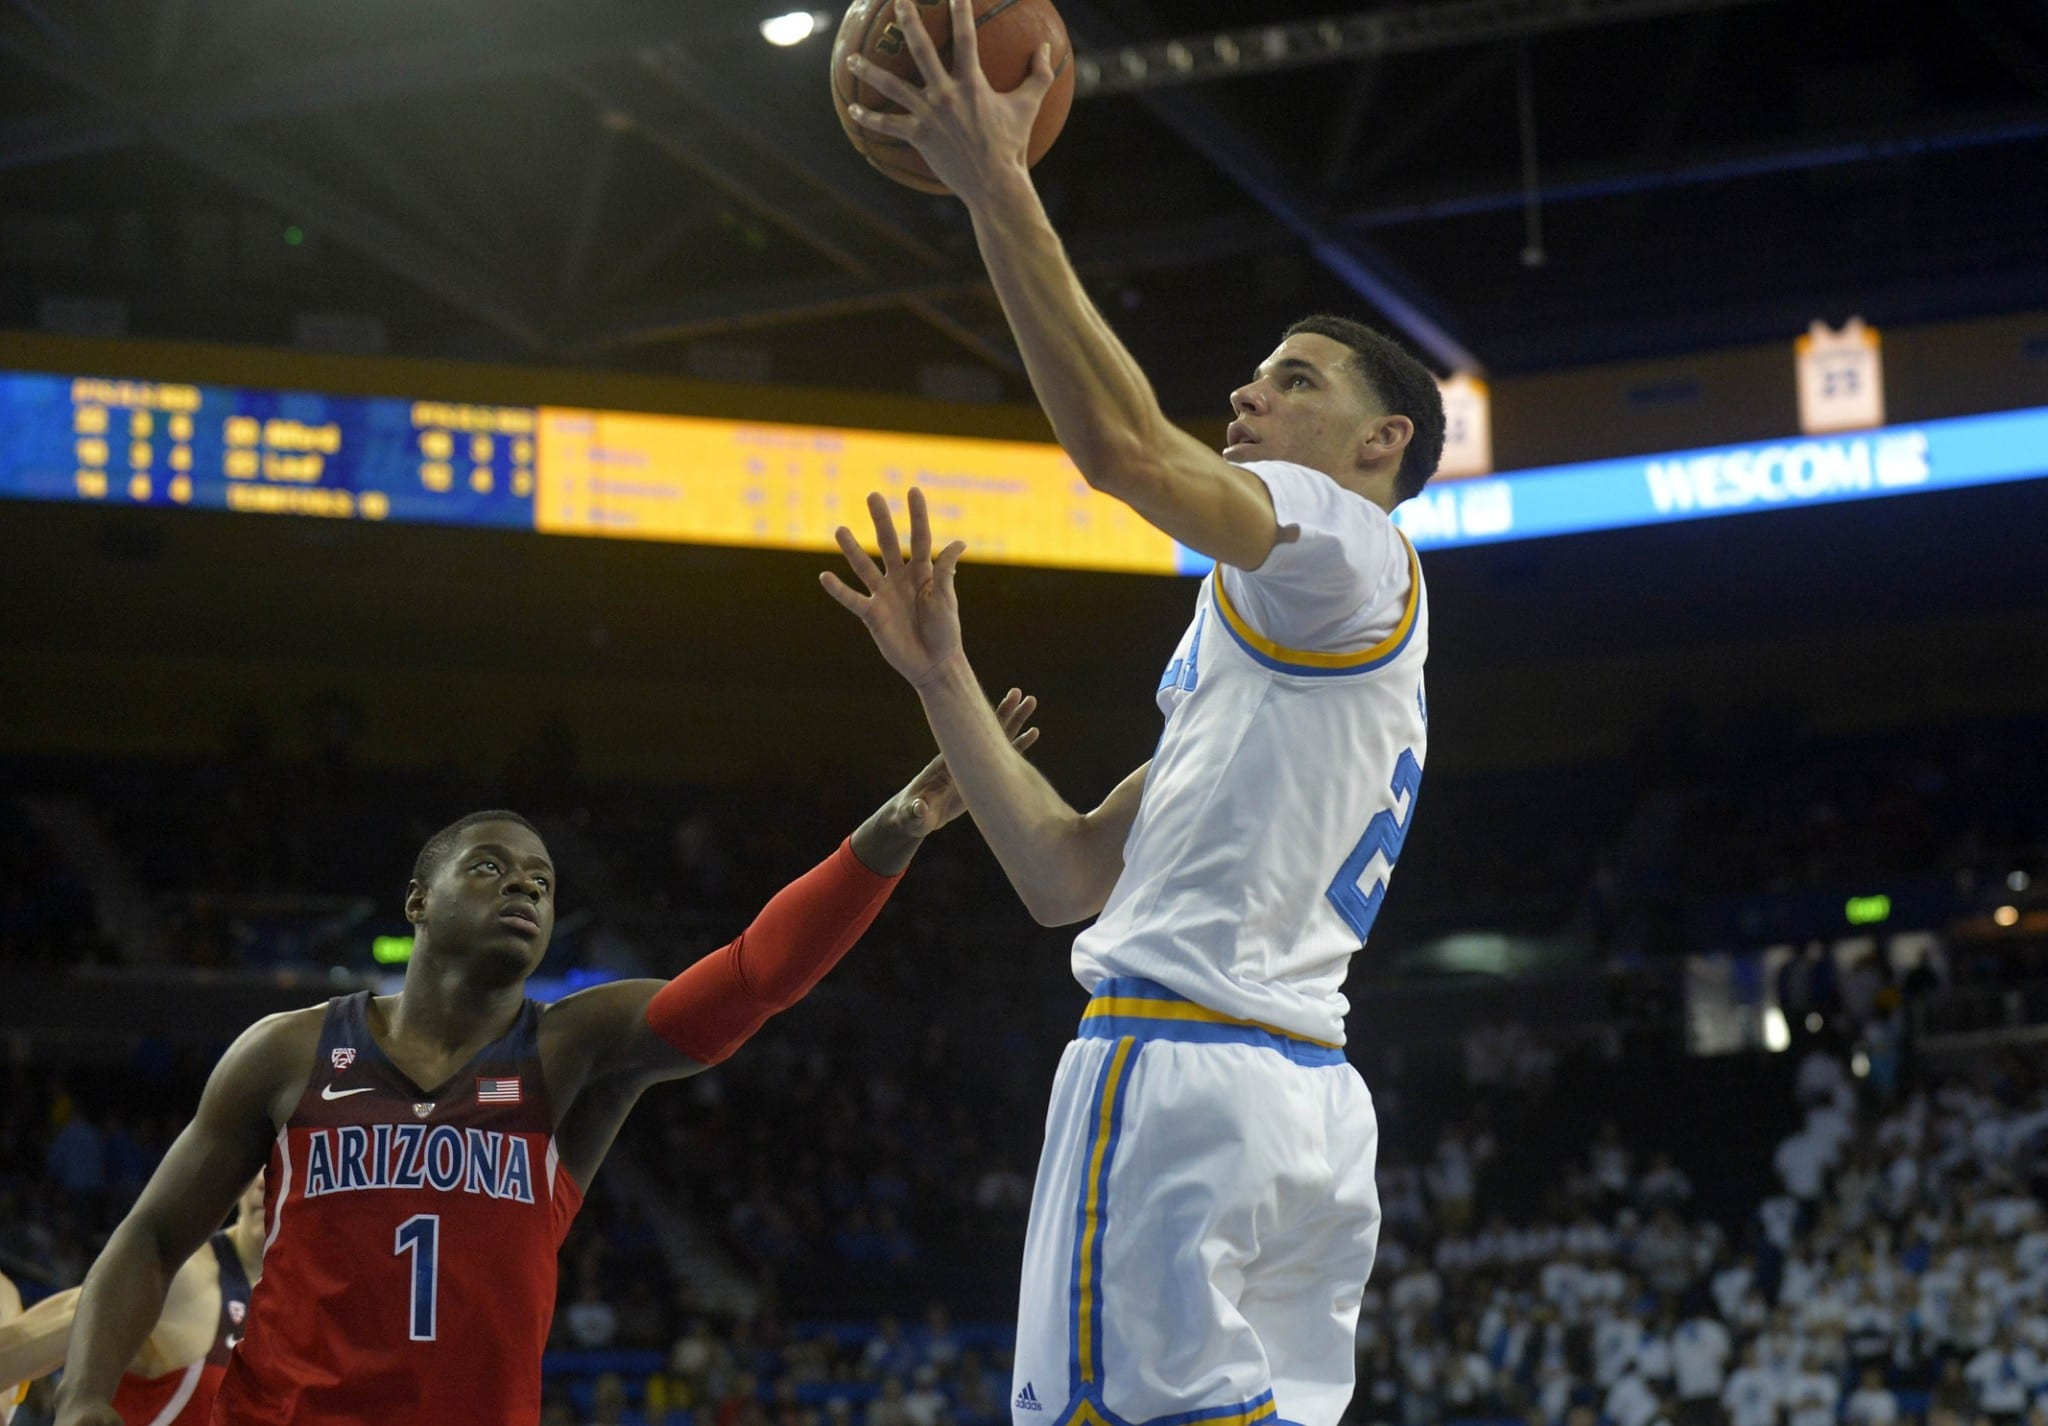 Lakers Draft: Latest Espn Mock Has L.a. Taking Lonzo Ball